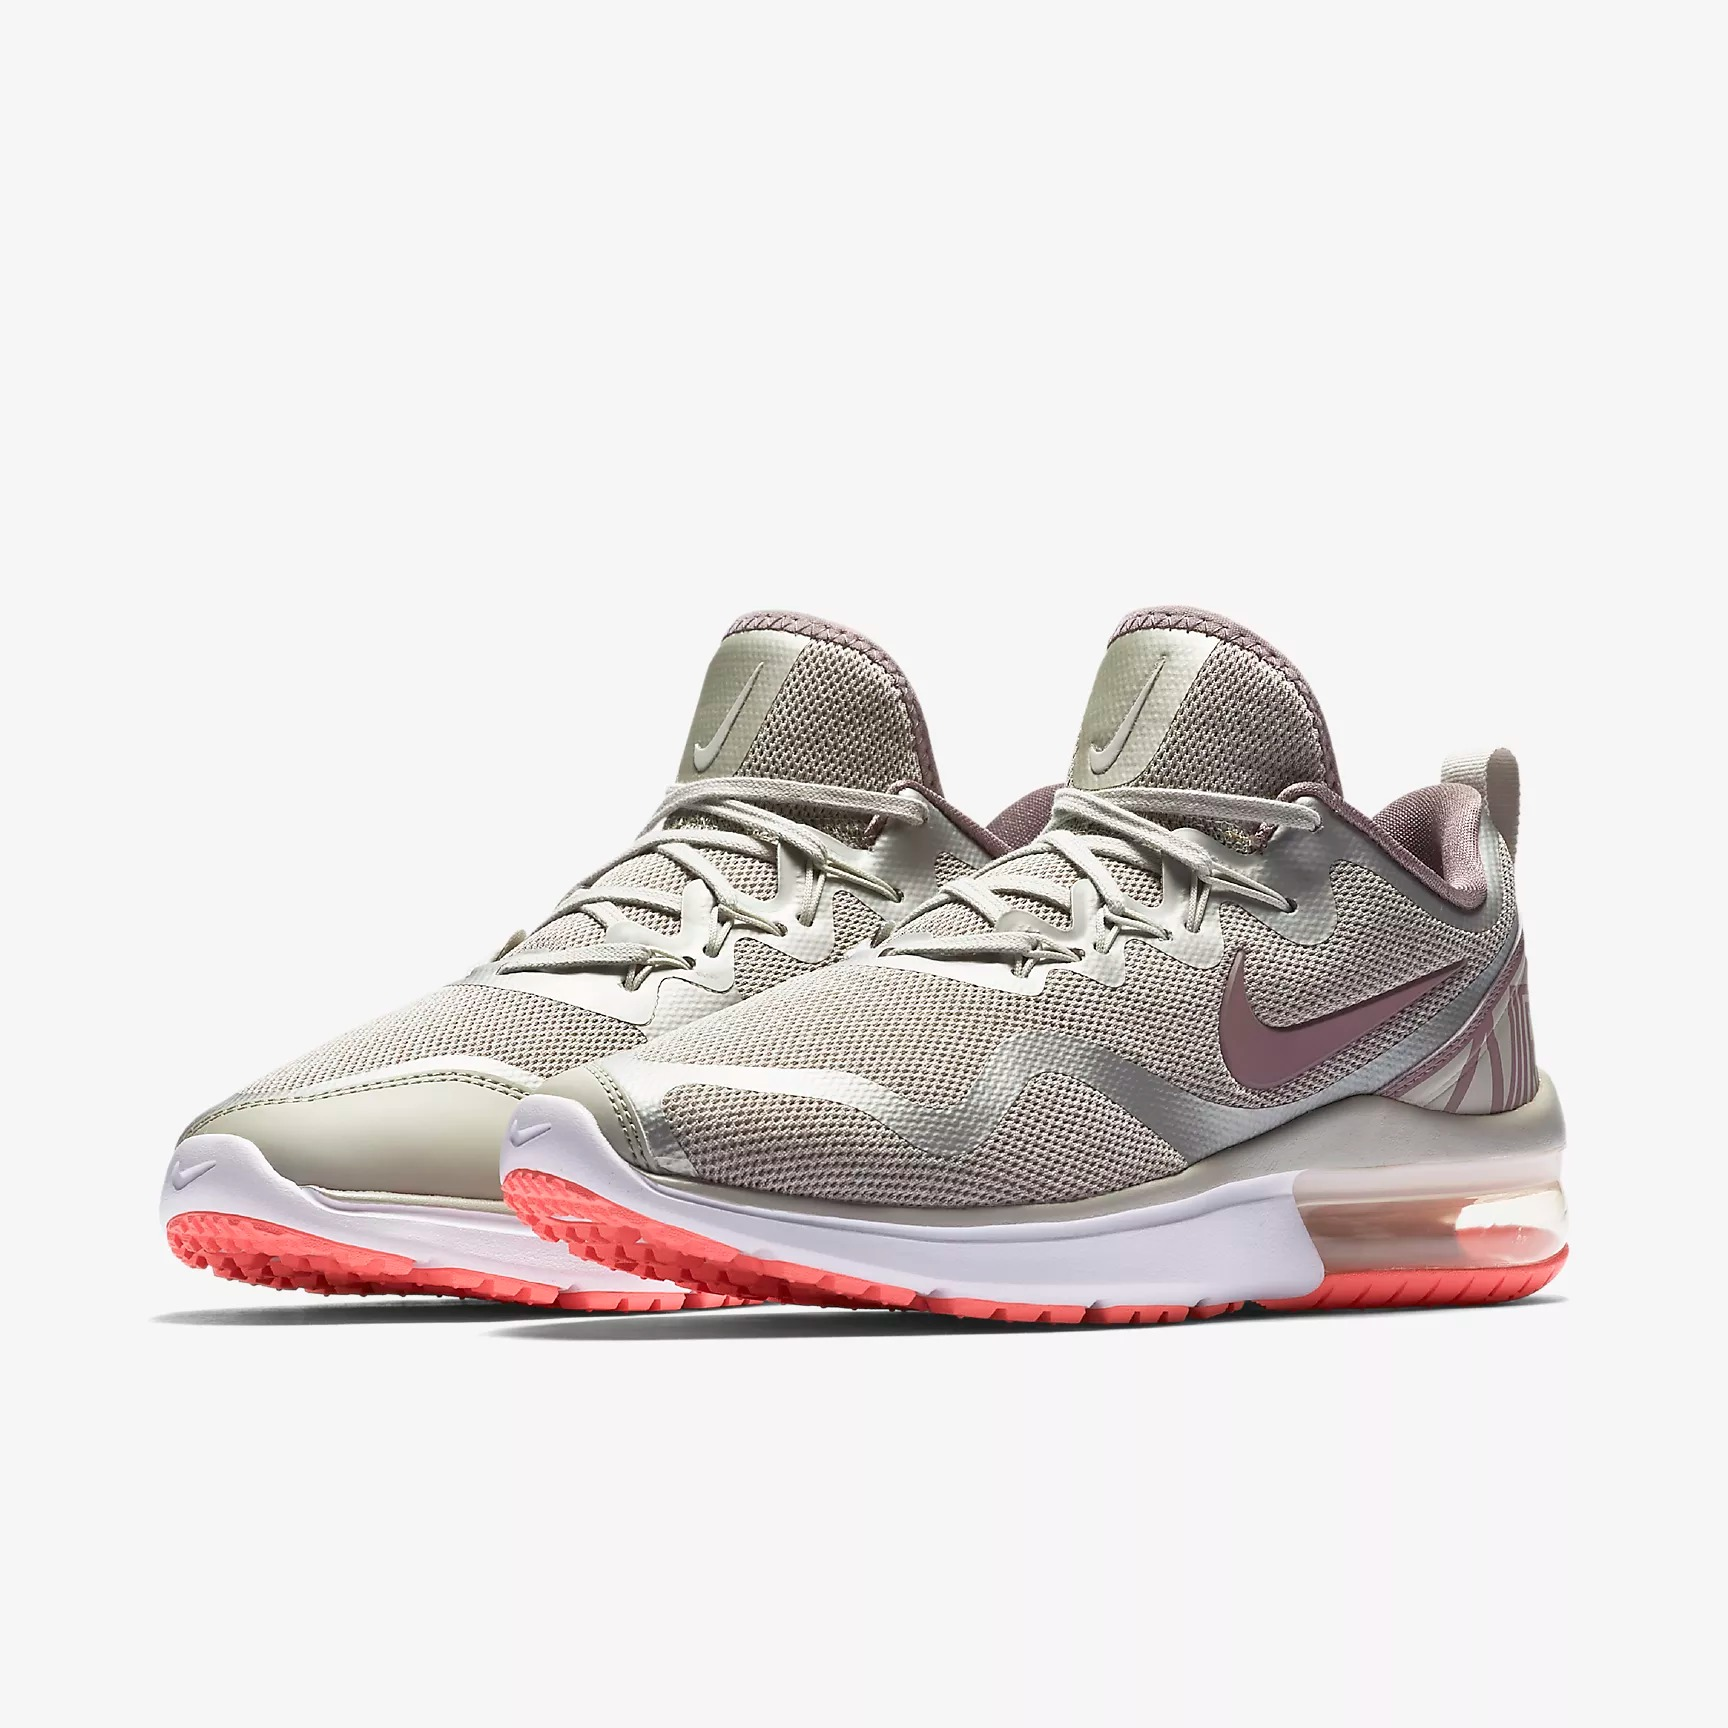 timeless design 3a4ab e6135 Nike Wmns Air Max Fury Running Shoes - SPORT SHOES RUNNING SHOES -  Superfanas.lt